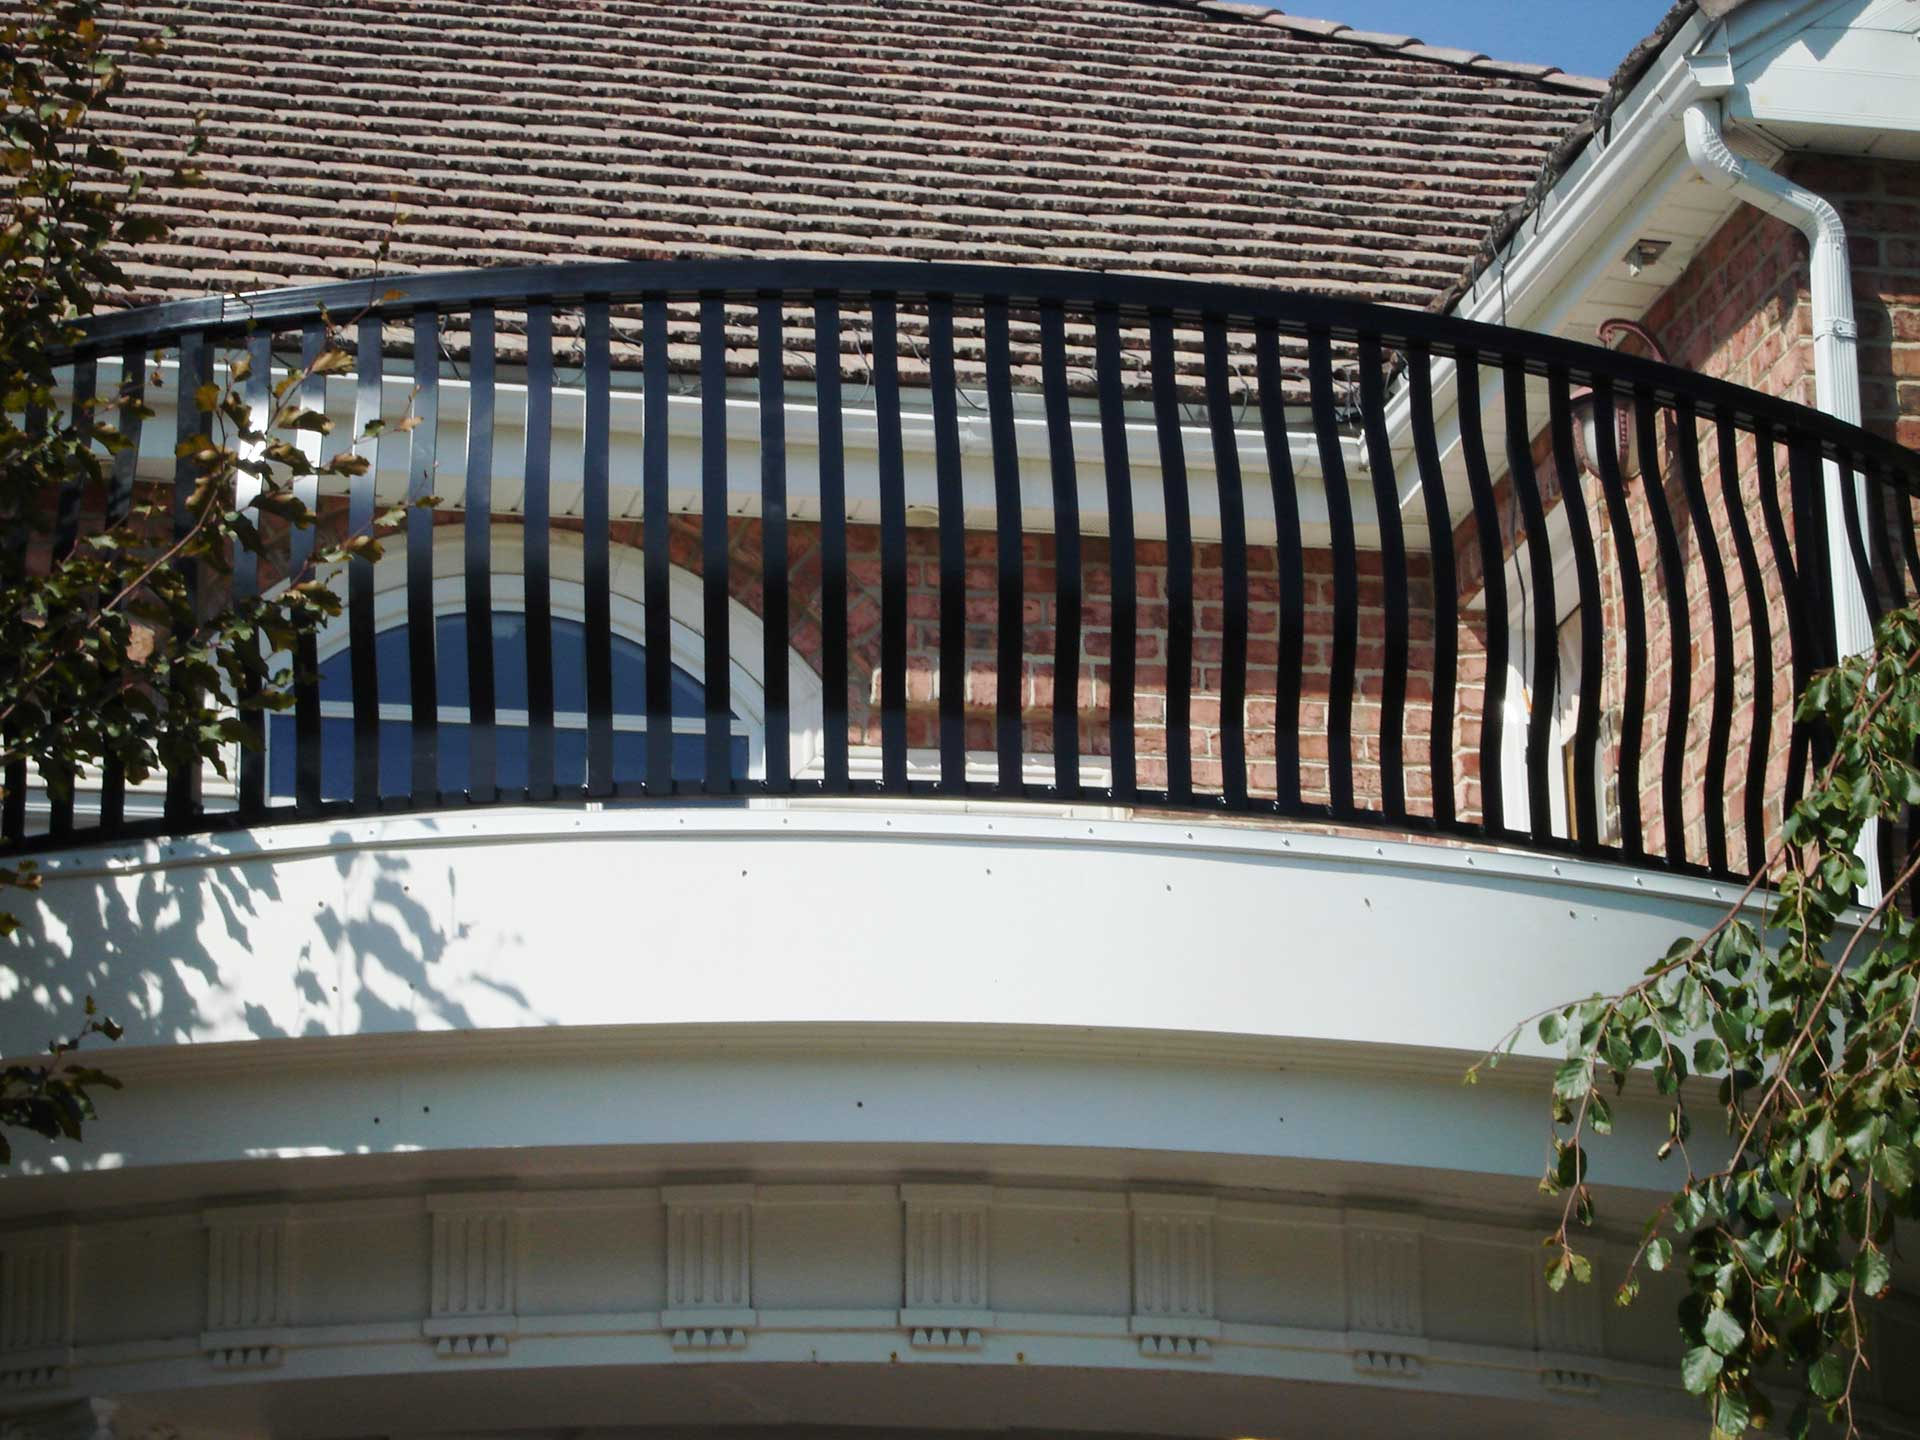 picket railing images gallery